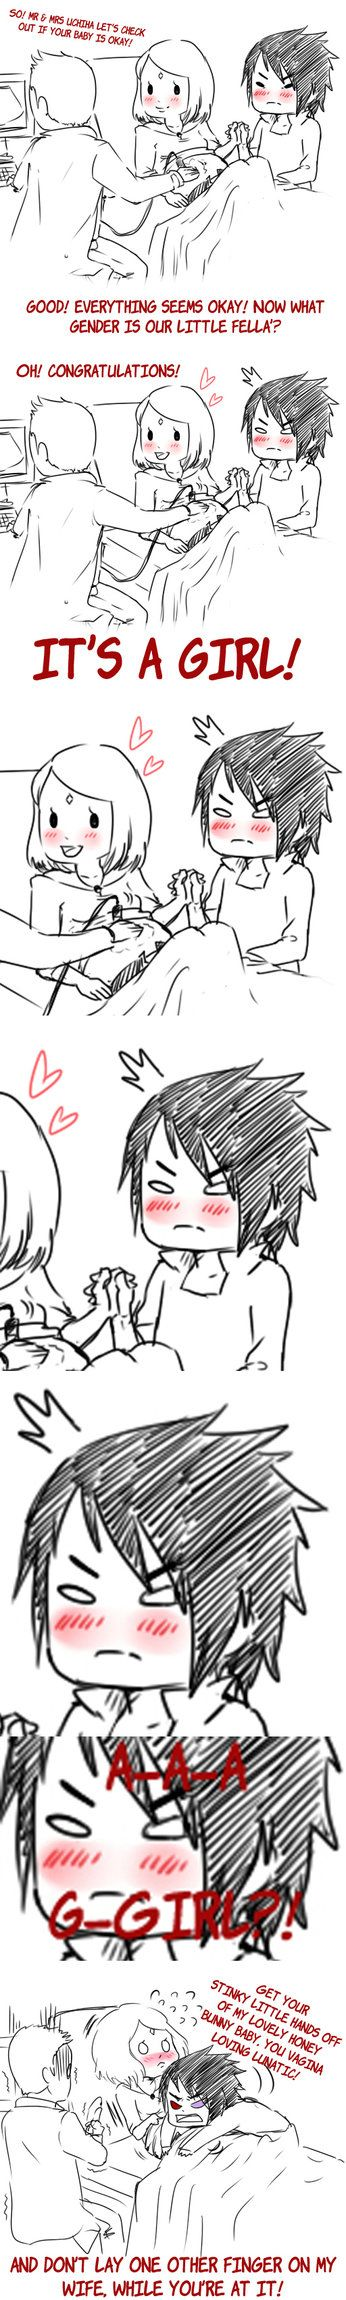 Uchihas.╮(─▽─)╭♥ Because all daddies are the same with their little princess. When I announced to my father that I had a boyfriend, he has been a bit...